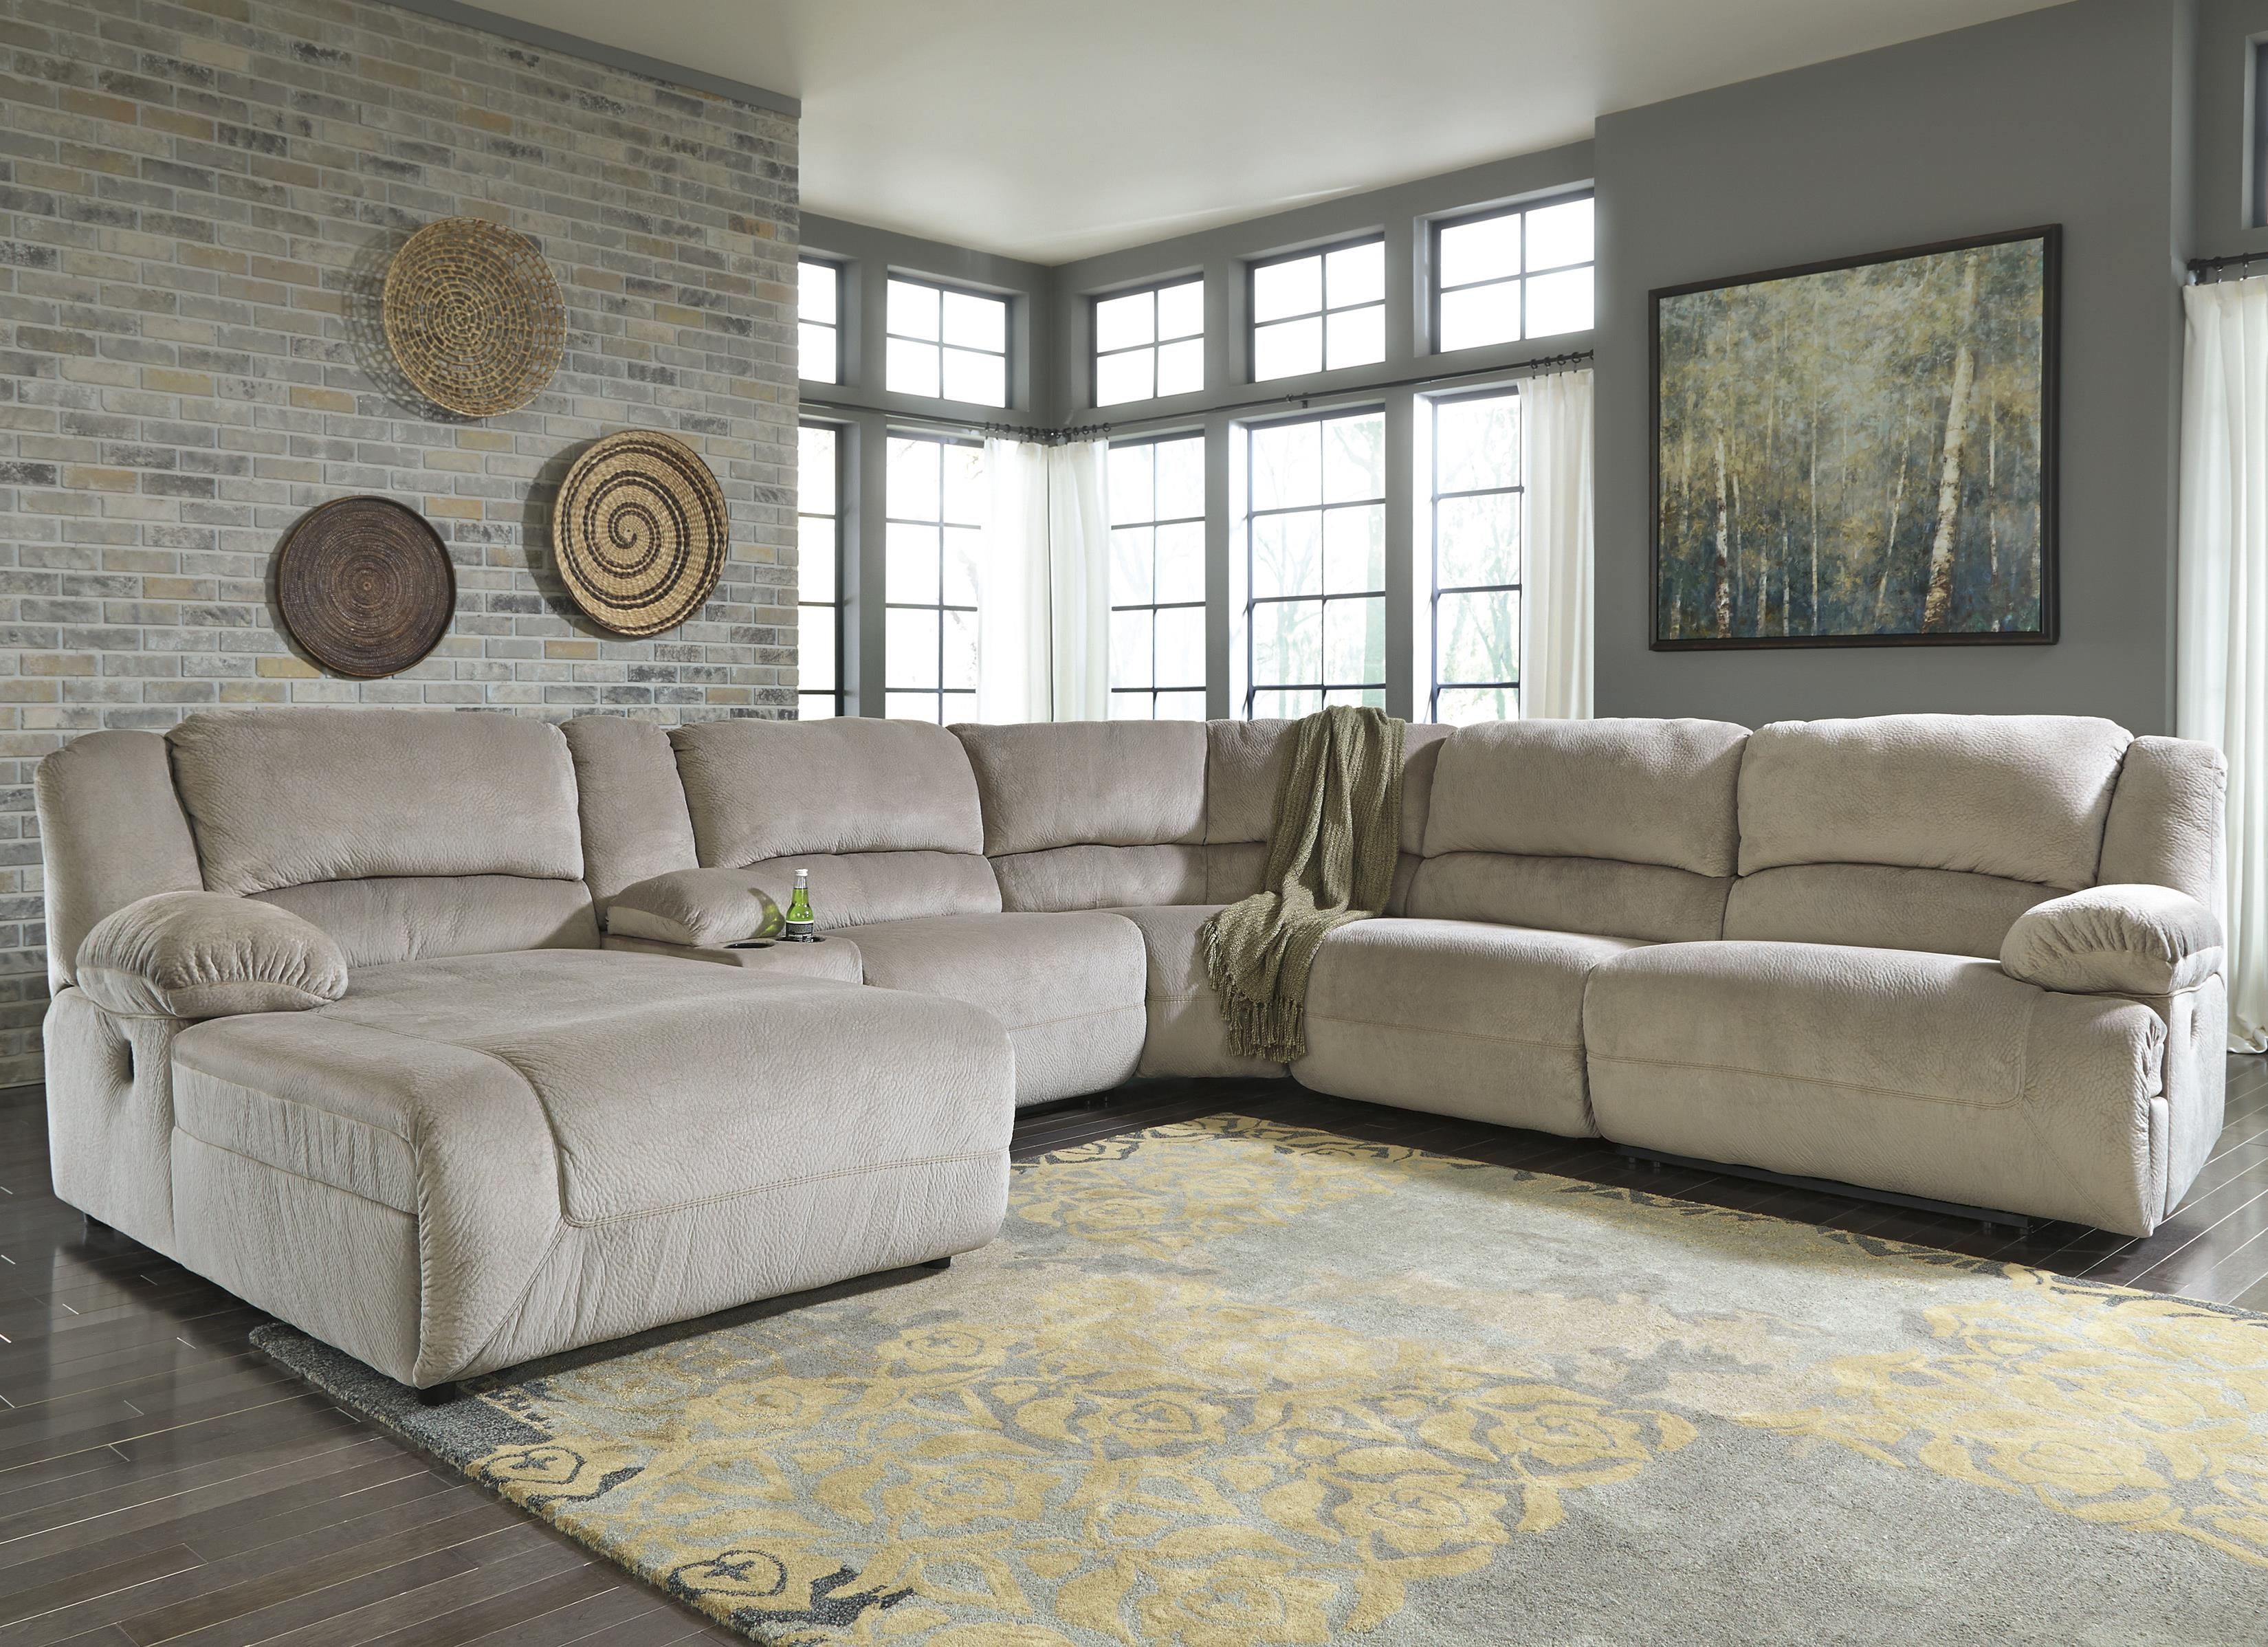 Signature Design by Ashley Toletta - Granite Power Recl. Sectional w/ Console & Chaise - Item Number: 5670379+57+46+77+19+62